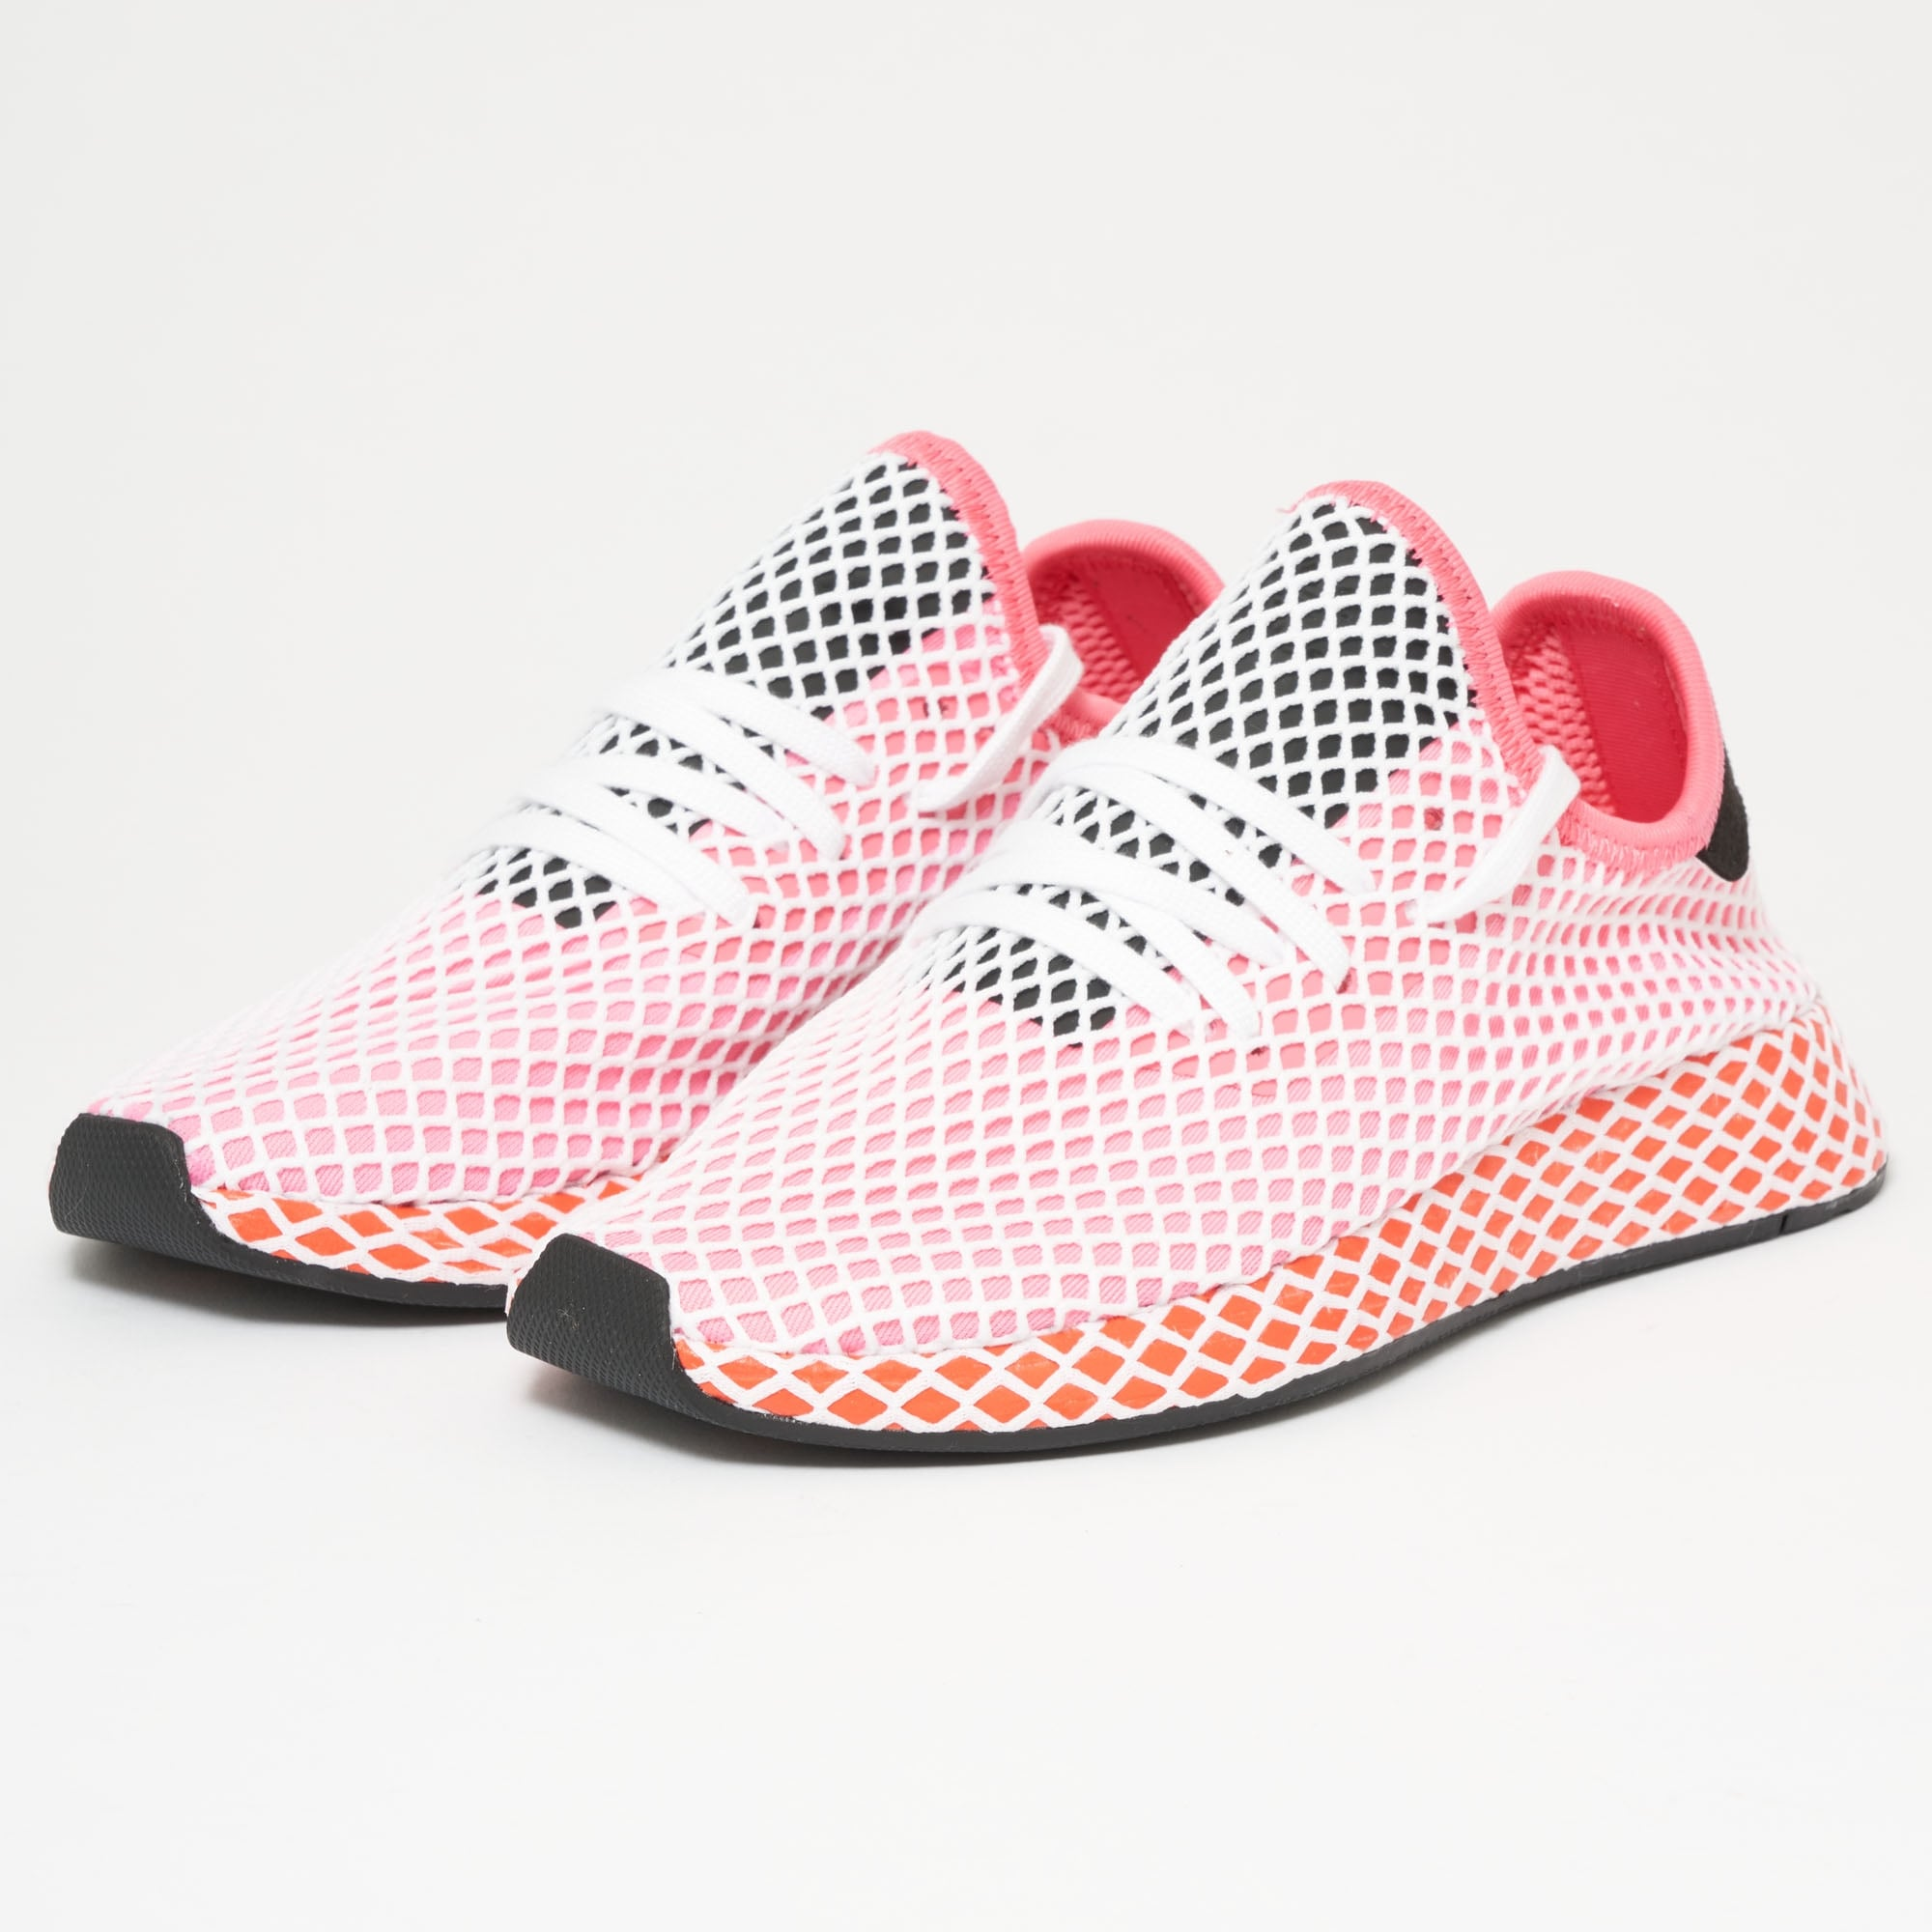 509ec4083d0 Deerupt Runner - Chalk Pink   Bold Orange